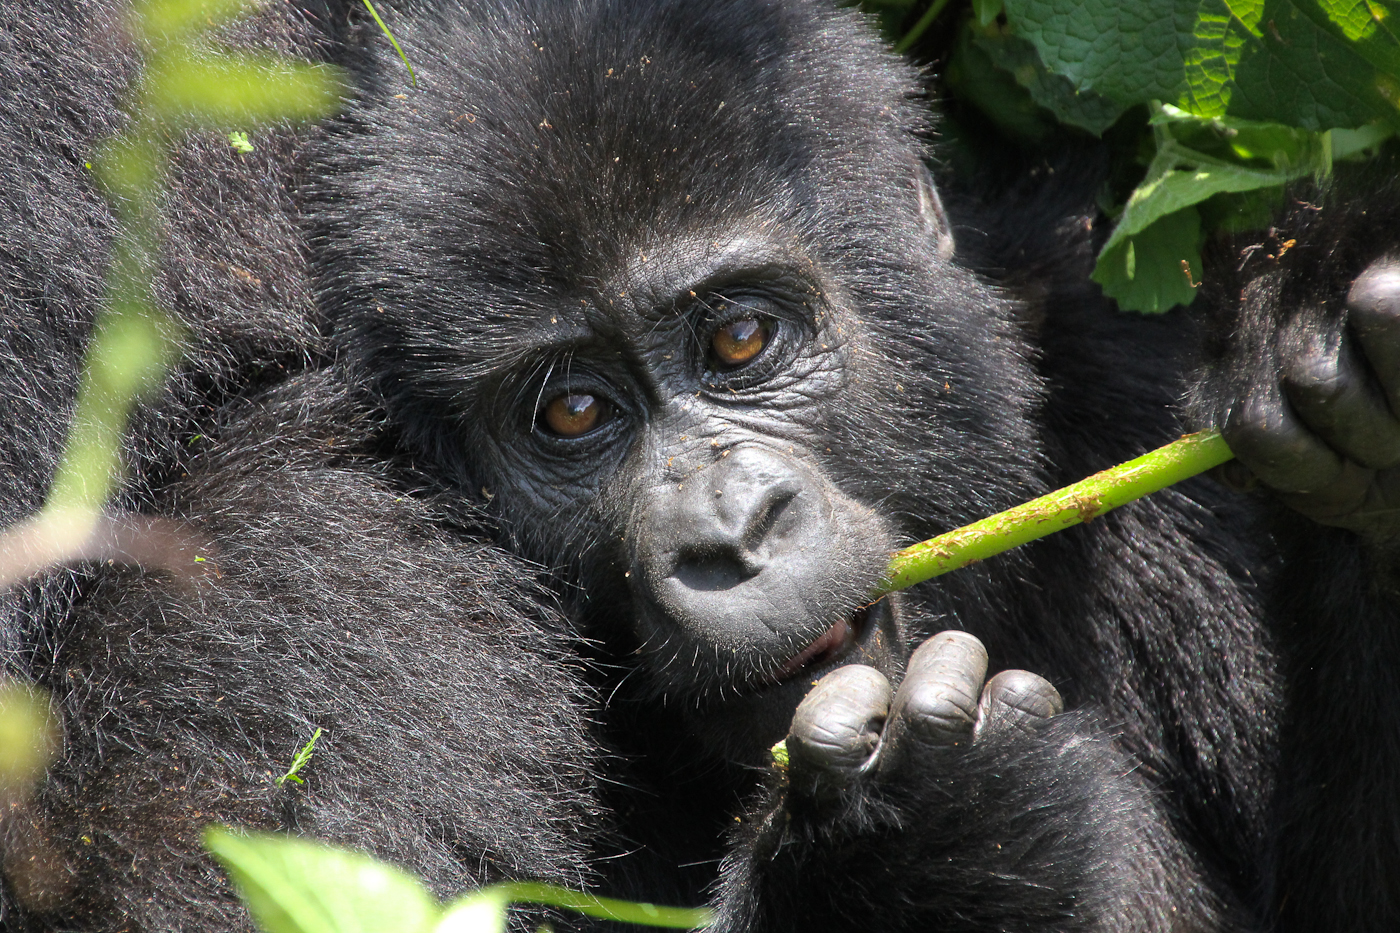 Baby Christmas. Each Mountain Gorilla has a name, this one was named for its date of birth.